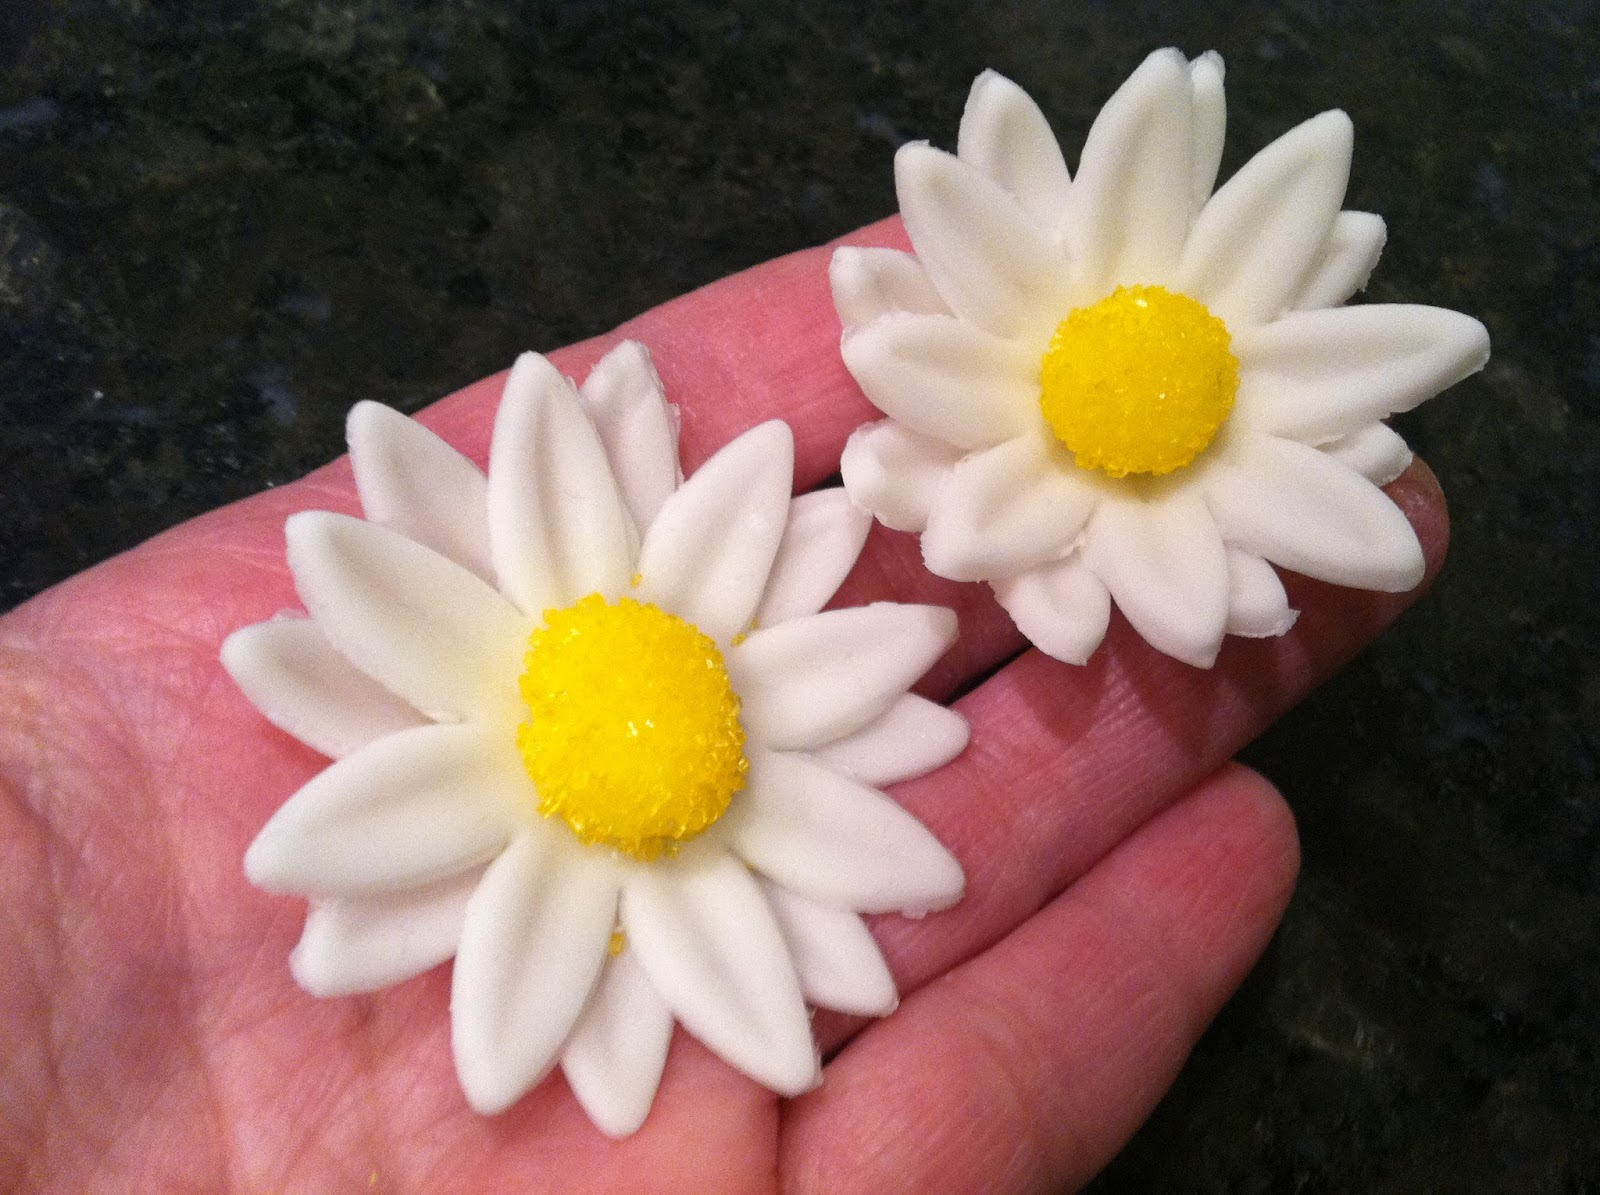 The Iced Queen Fondant Daisies